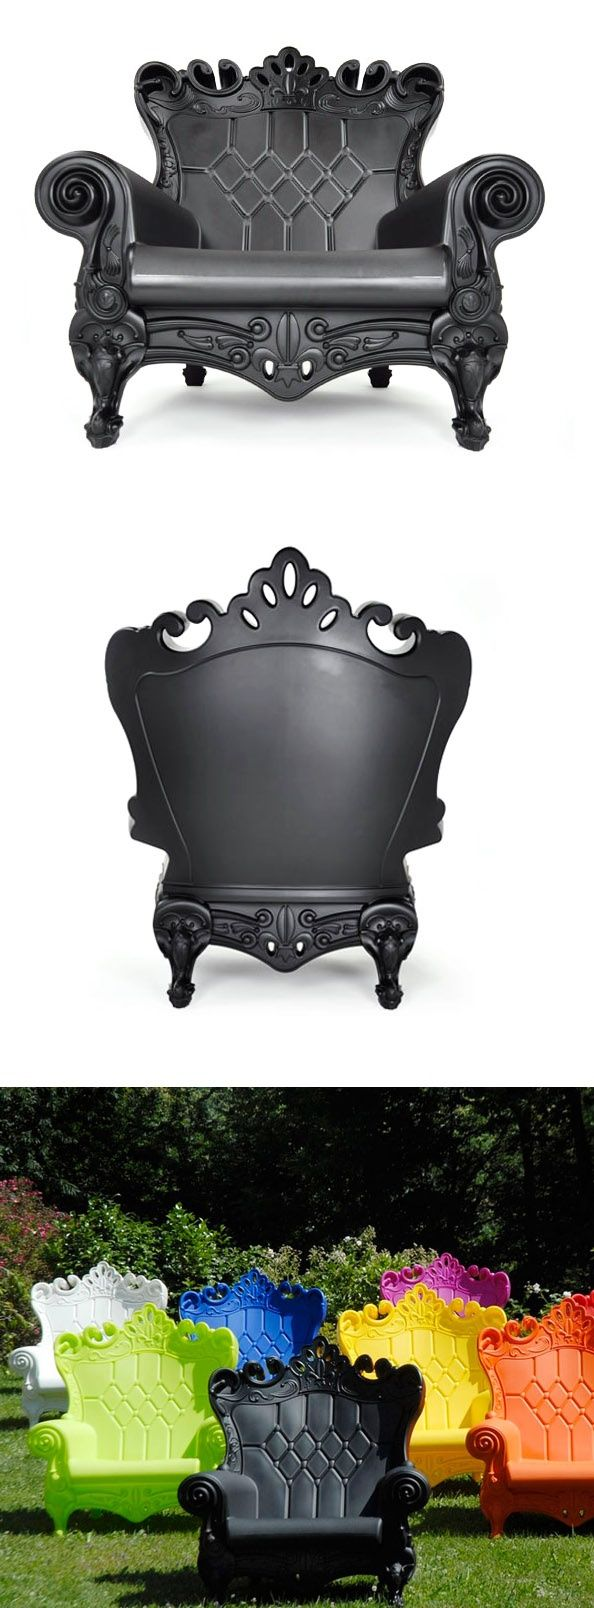 Baroque Plastic Chair - feel like a king or queen in these chairs ...love them!